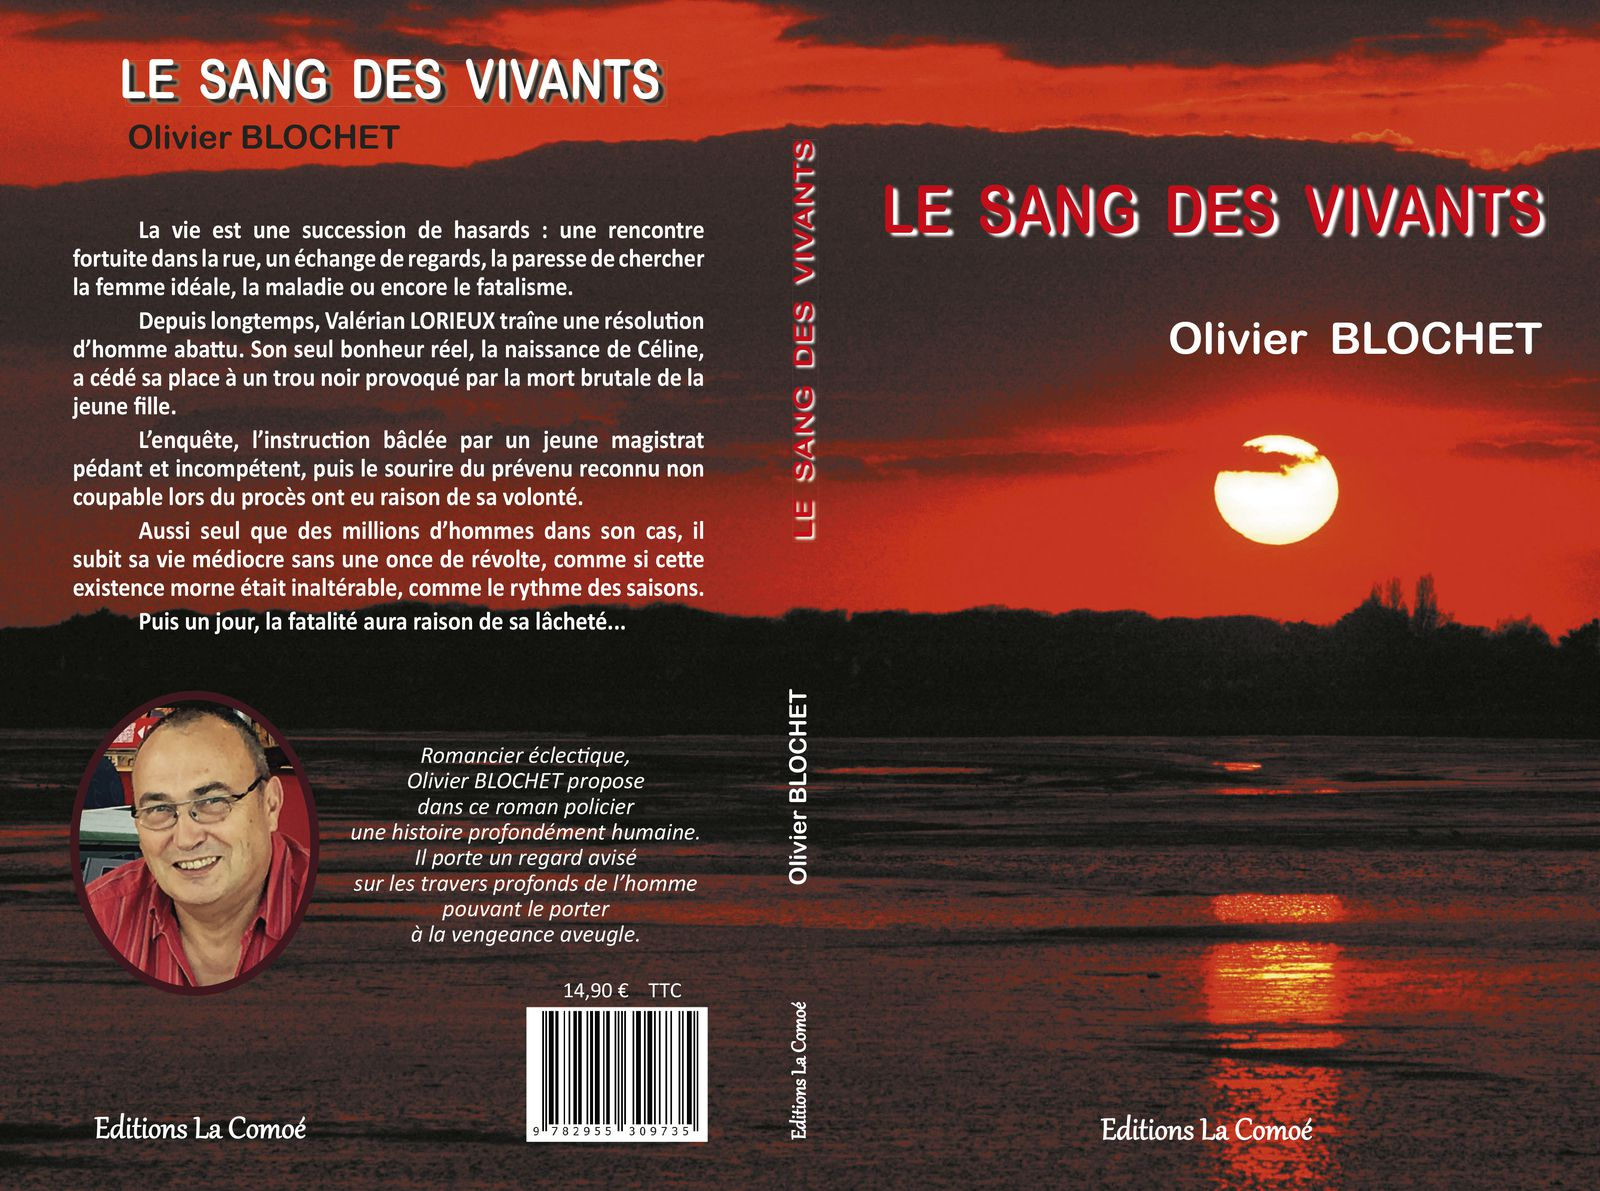 180 pages - 14,90 euros (2018)